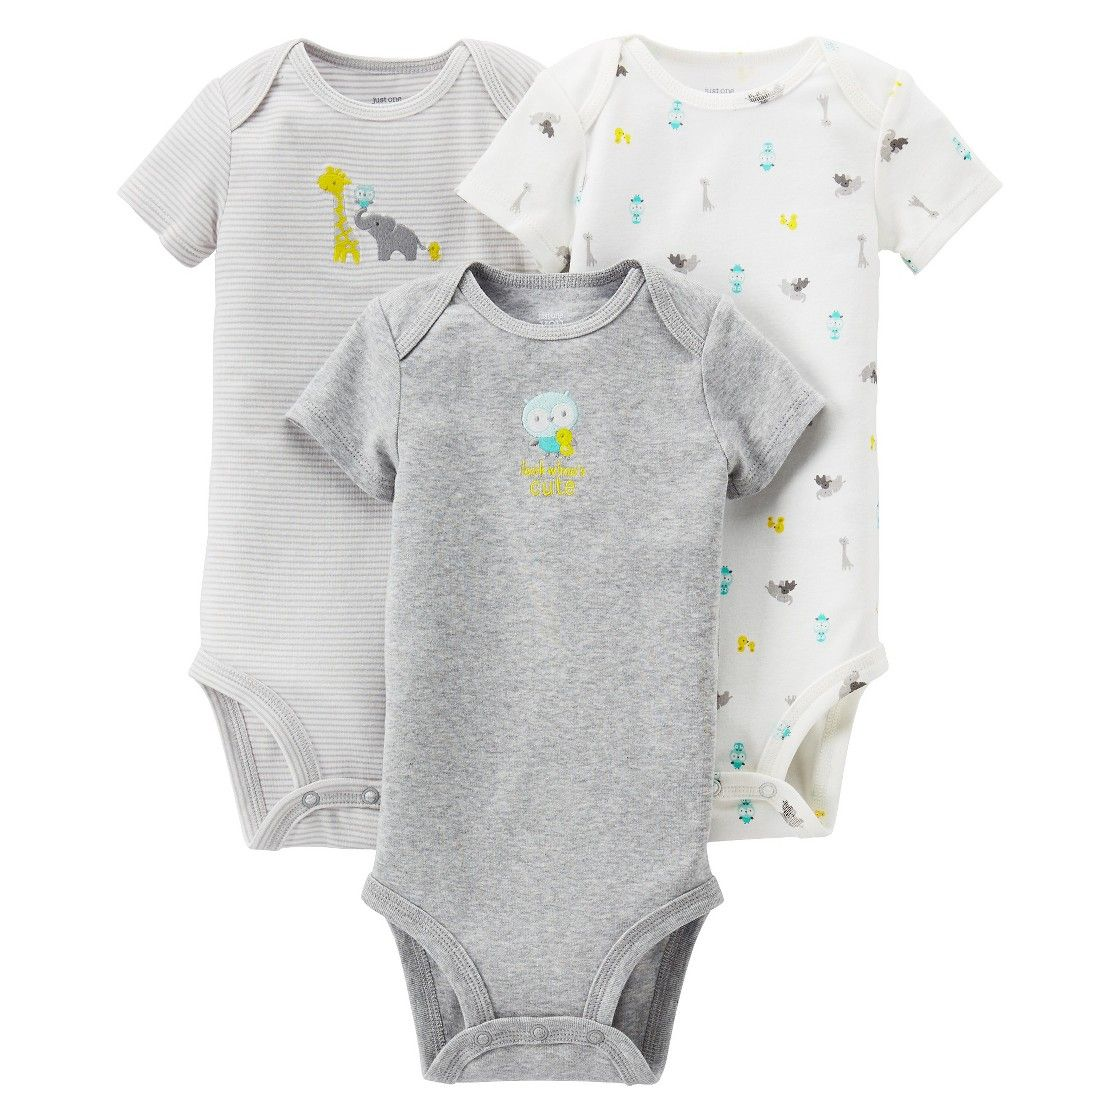 f8d175348 Just One You Made by Carter's  Newborn 3 Pack Short-sleeve Elephant Family  Bodysuit Set - Grey